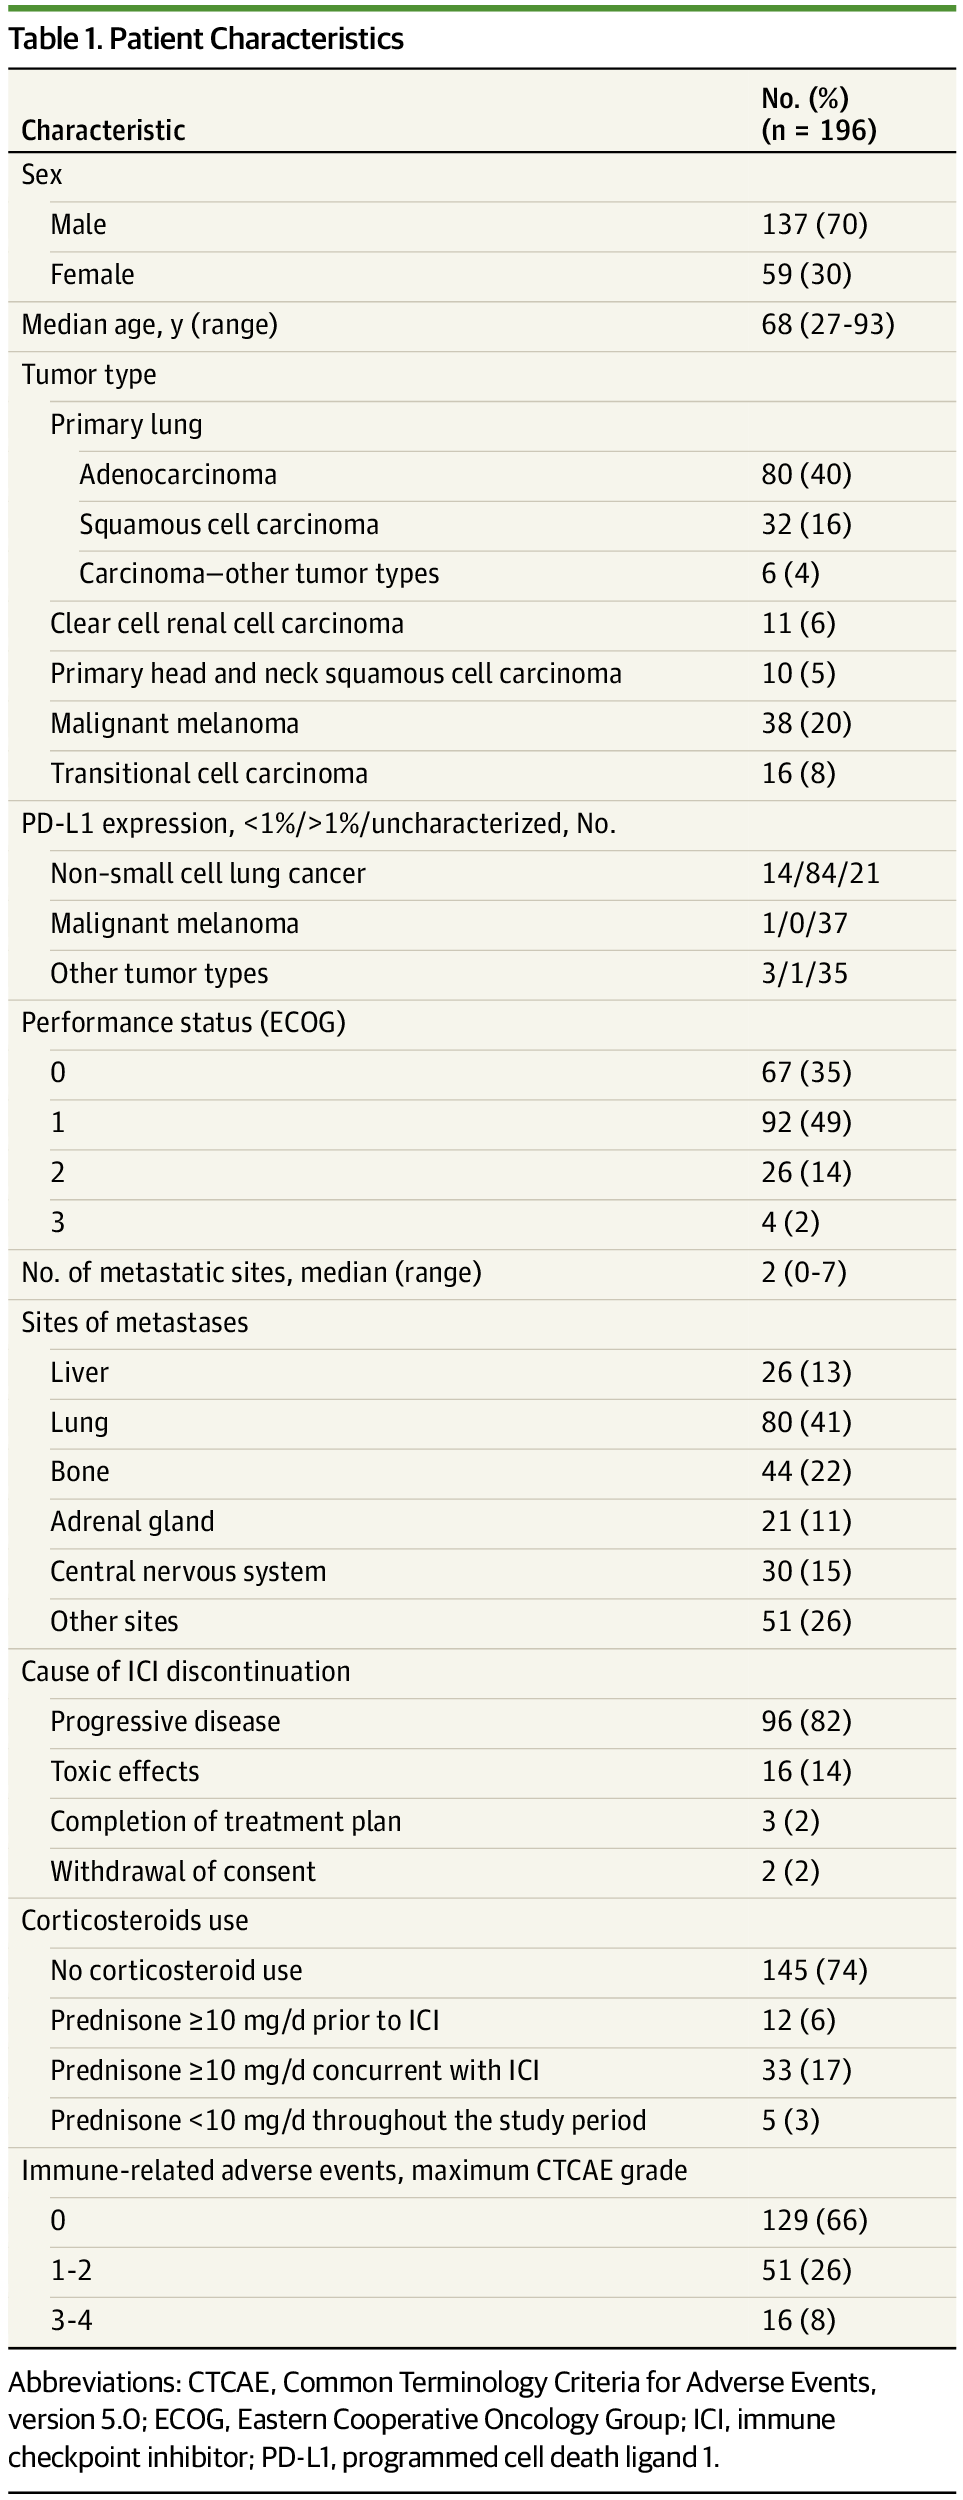 Association of Prior Antibiotic Treatment With Survival and Response to Immune Checkpoint Inhibitor Therapy in Patients With Cancer